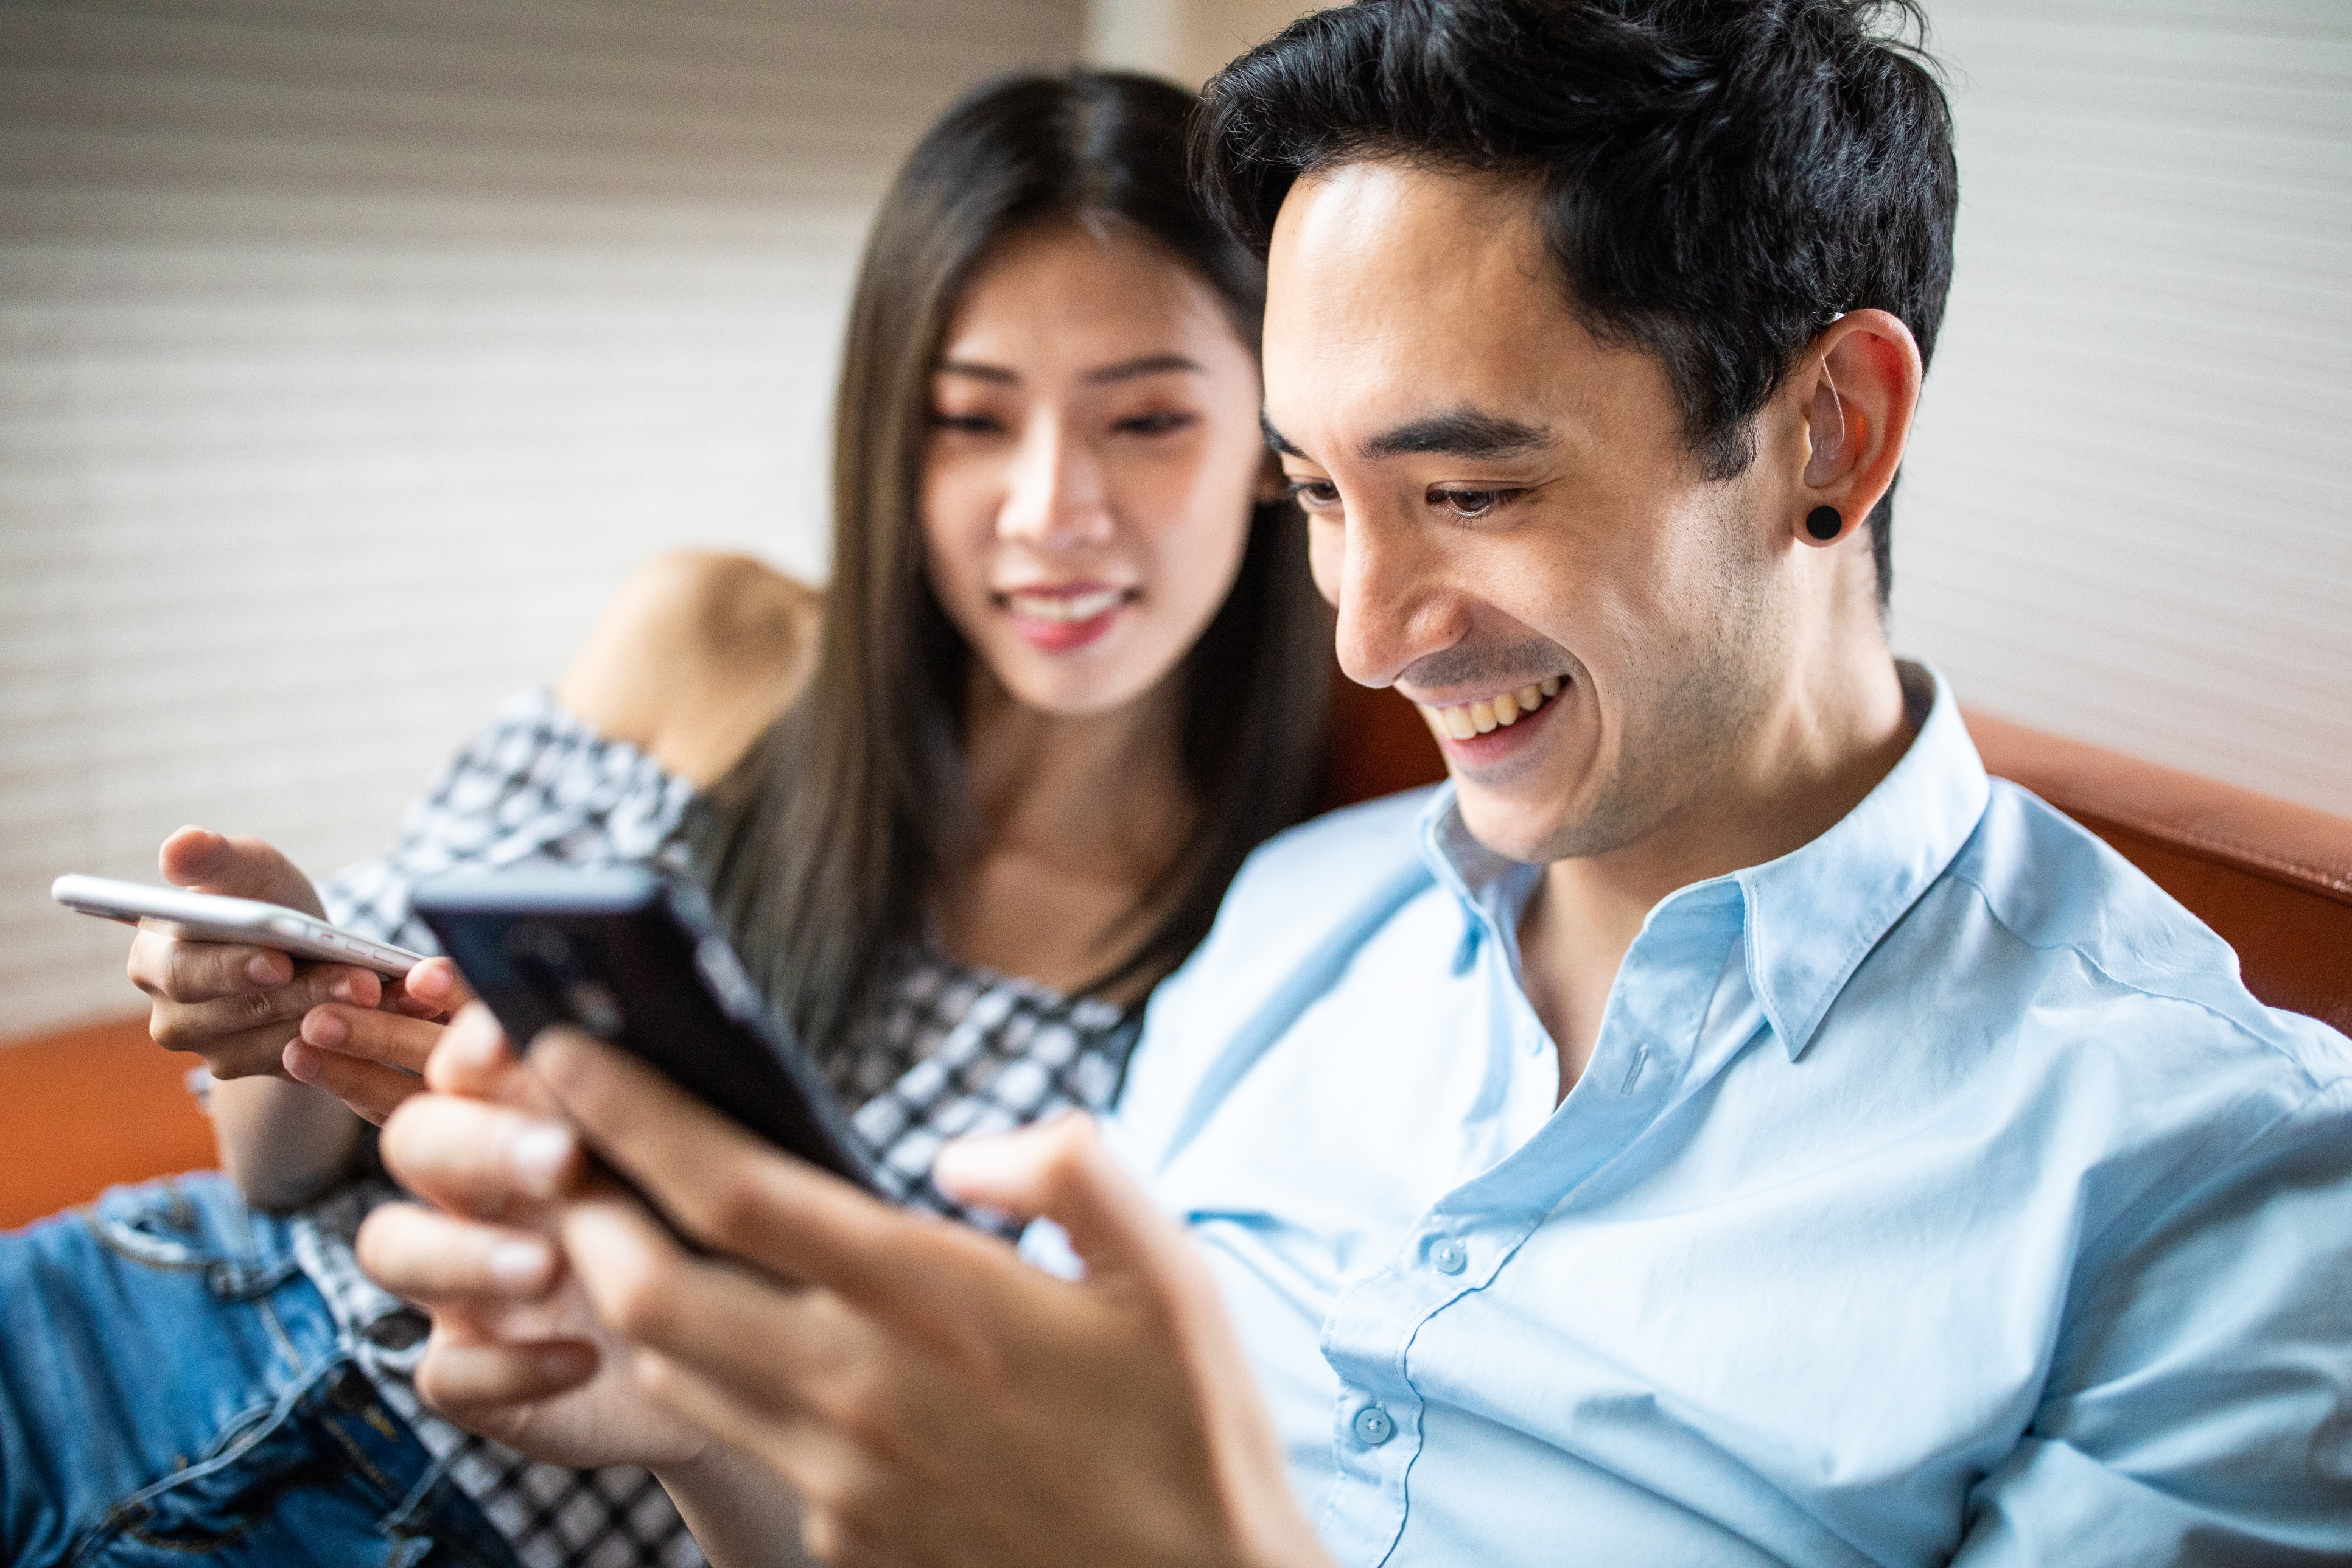 Couple relaxing together, man wearing hearing aids